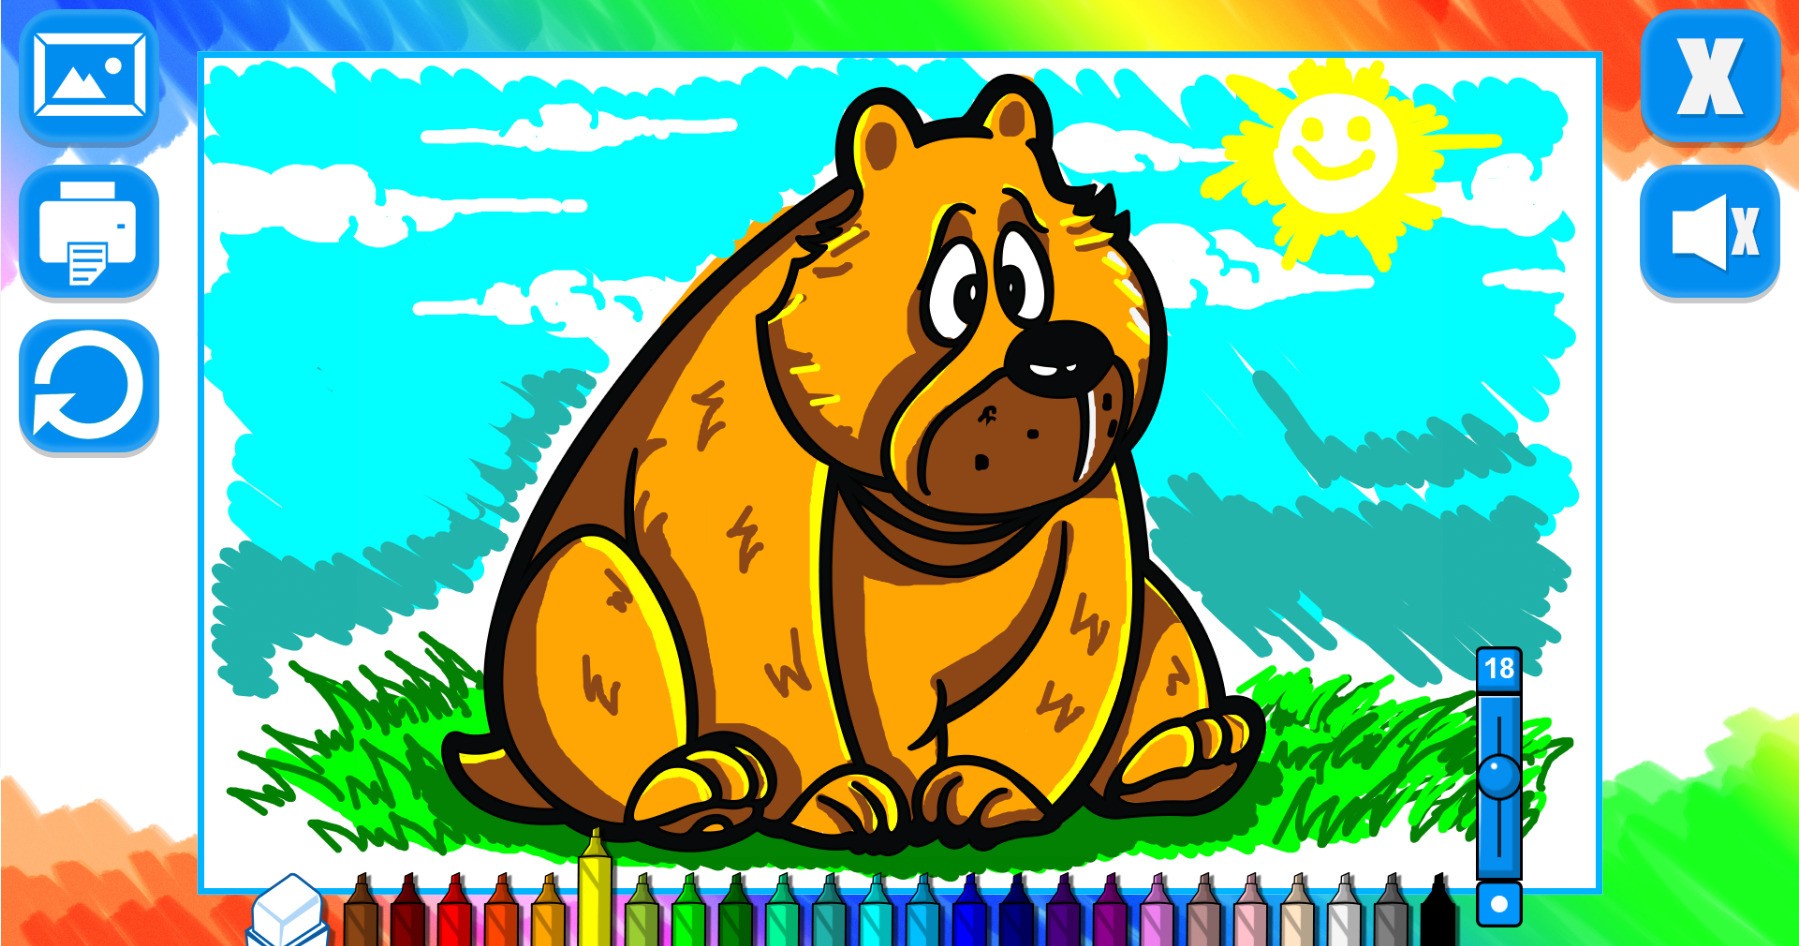 Coloring book html5 - Http Codecanyon Net Item Html5 Coloring Book Animals Html5 Game 11814296 Ref Codethislab